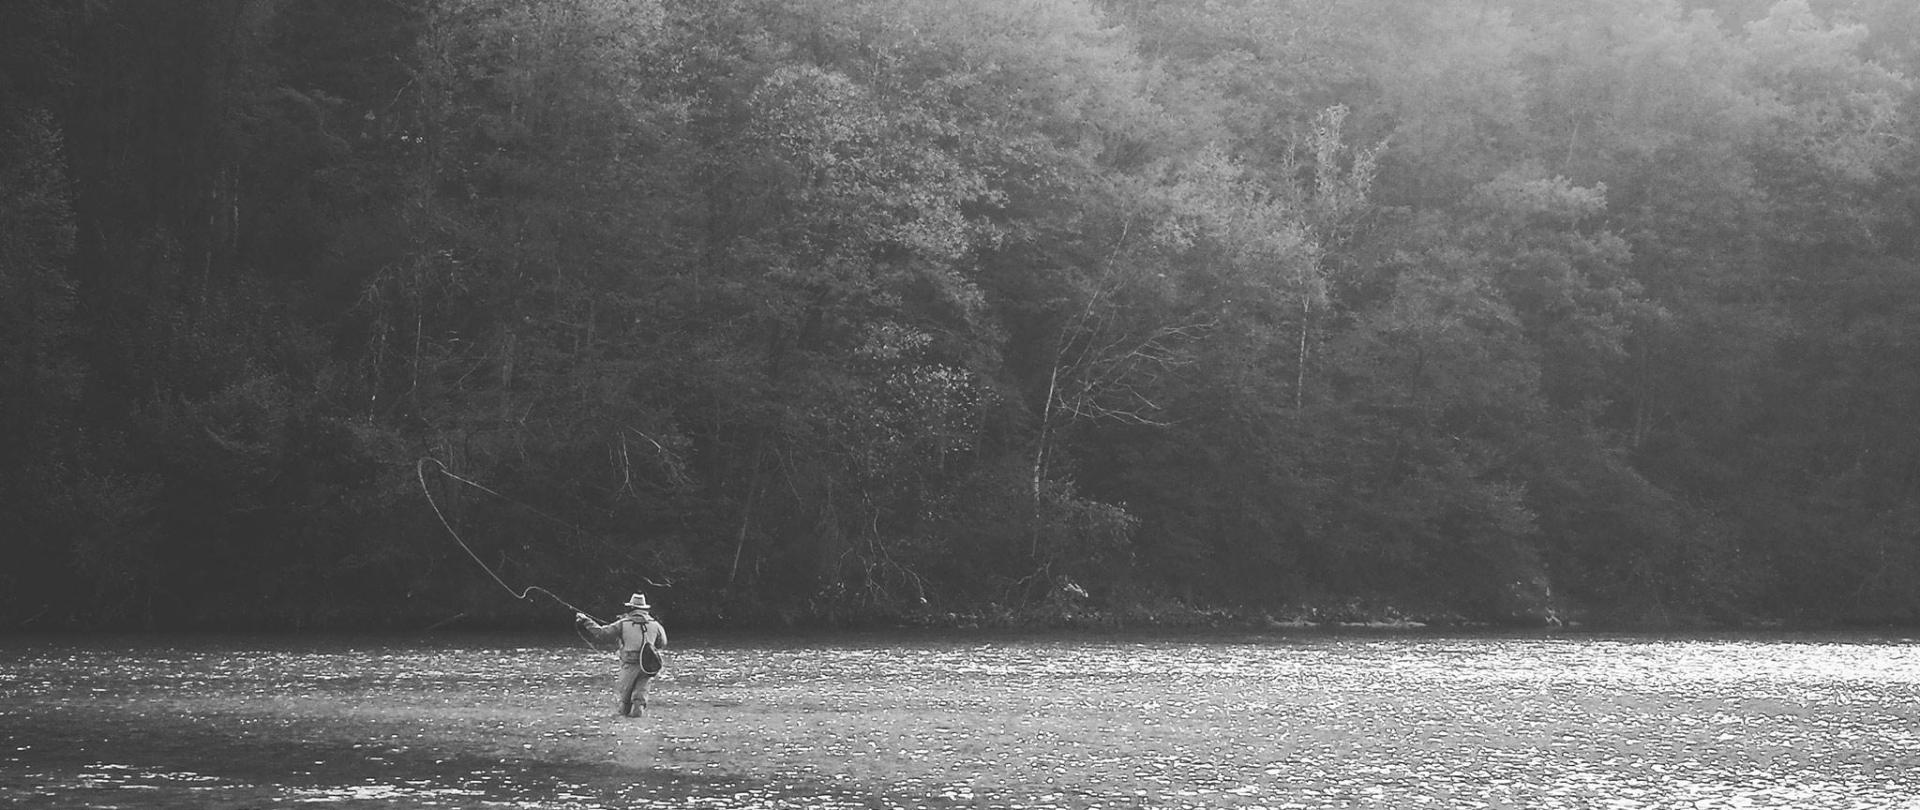 activities_flyfishing_02.jpg